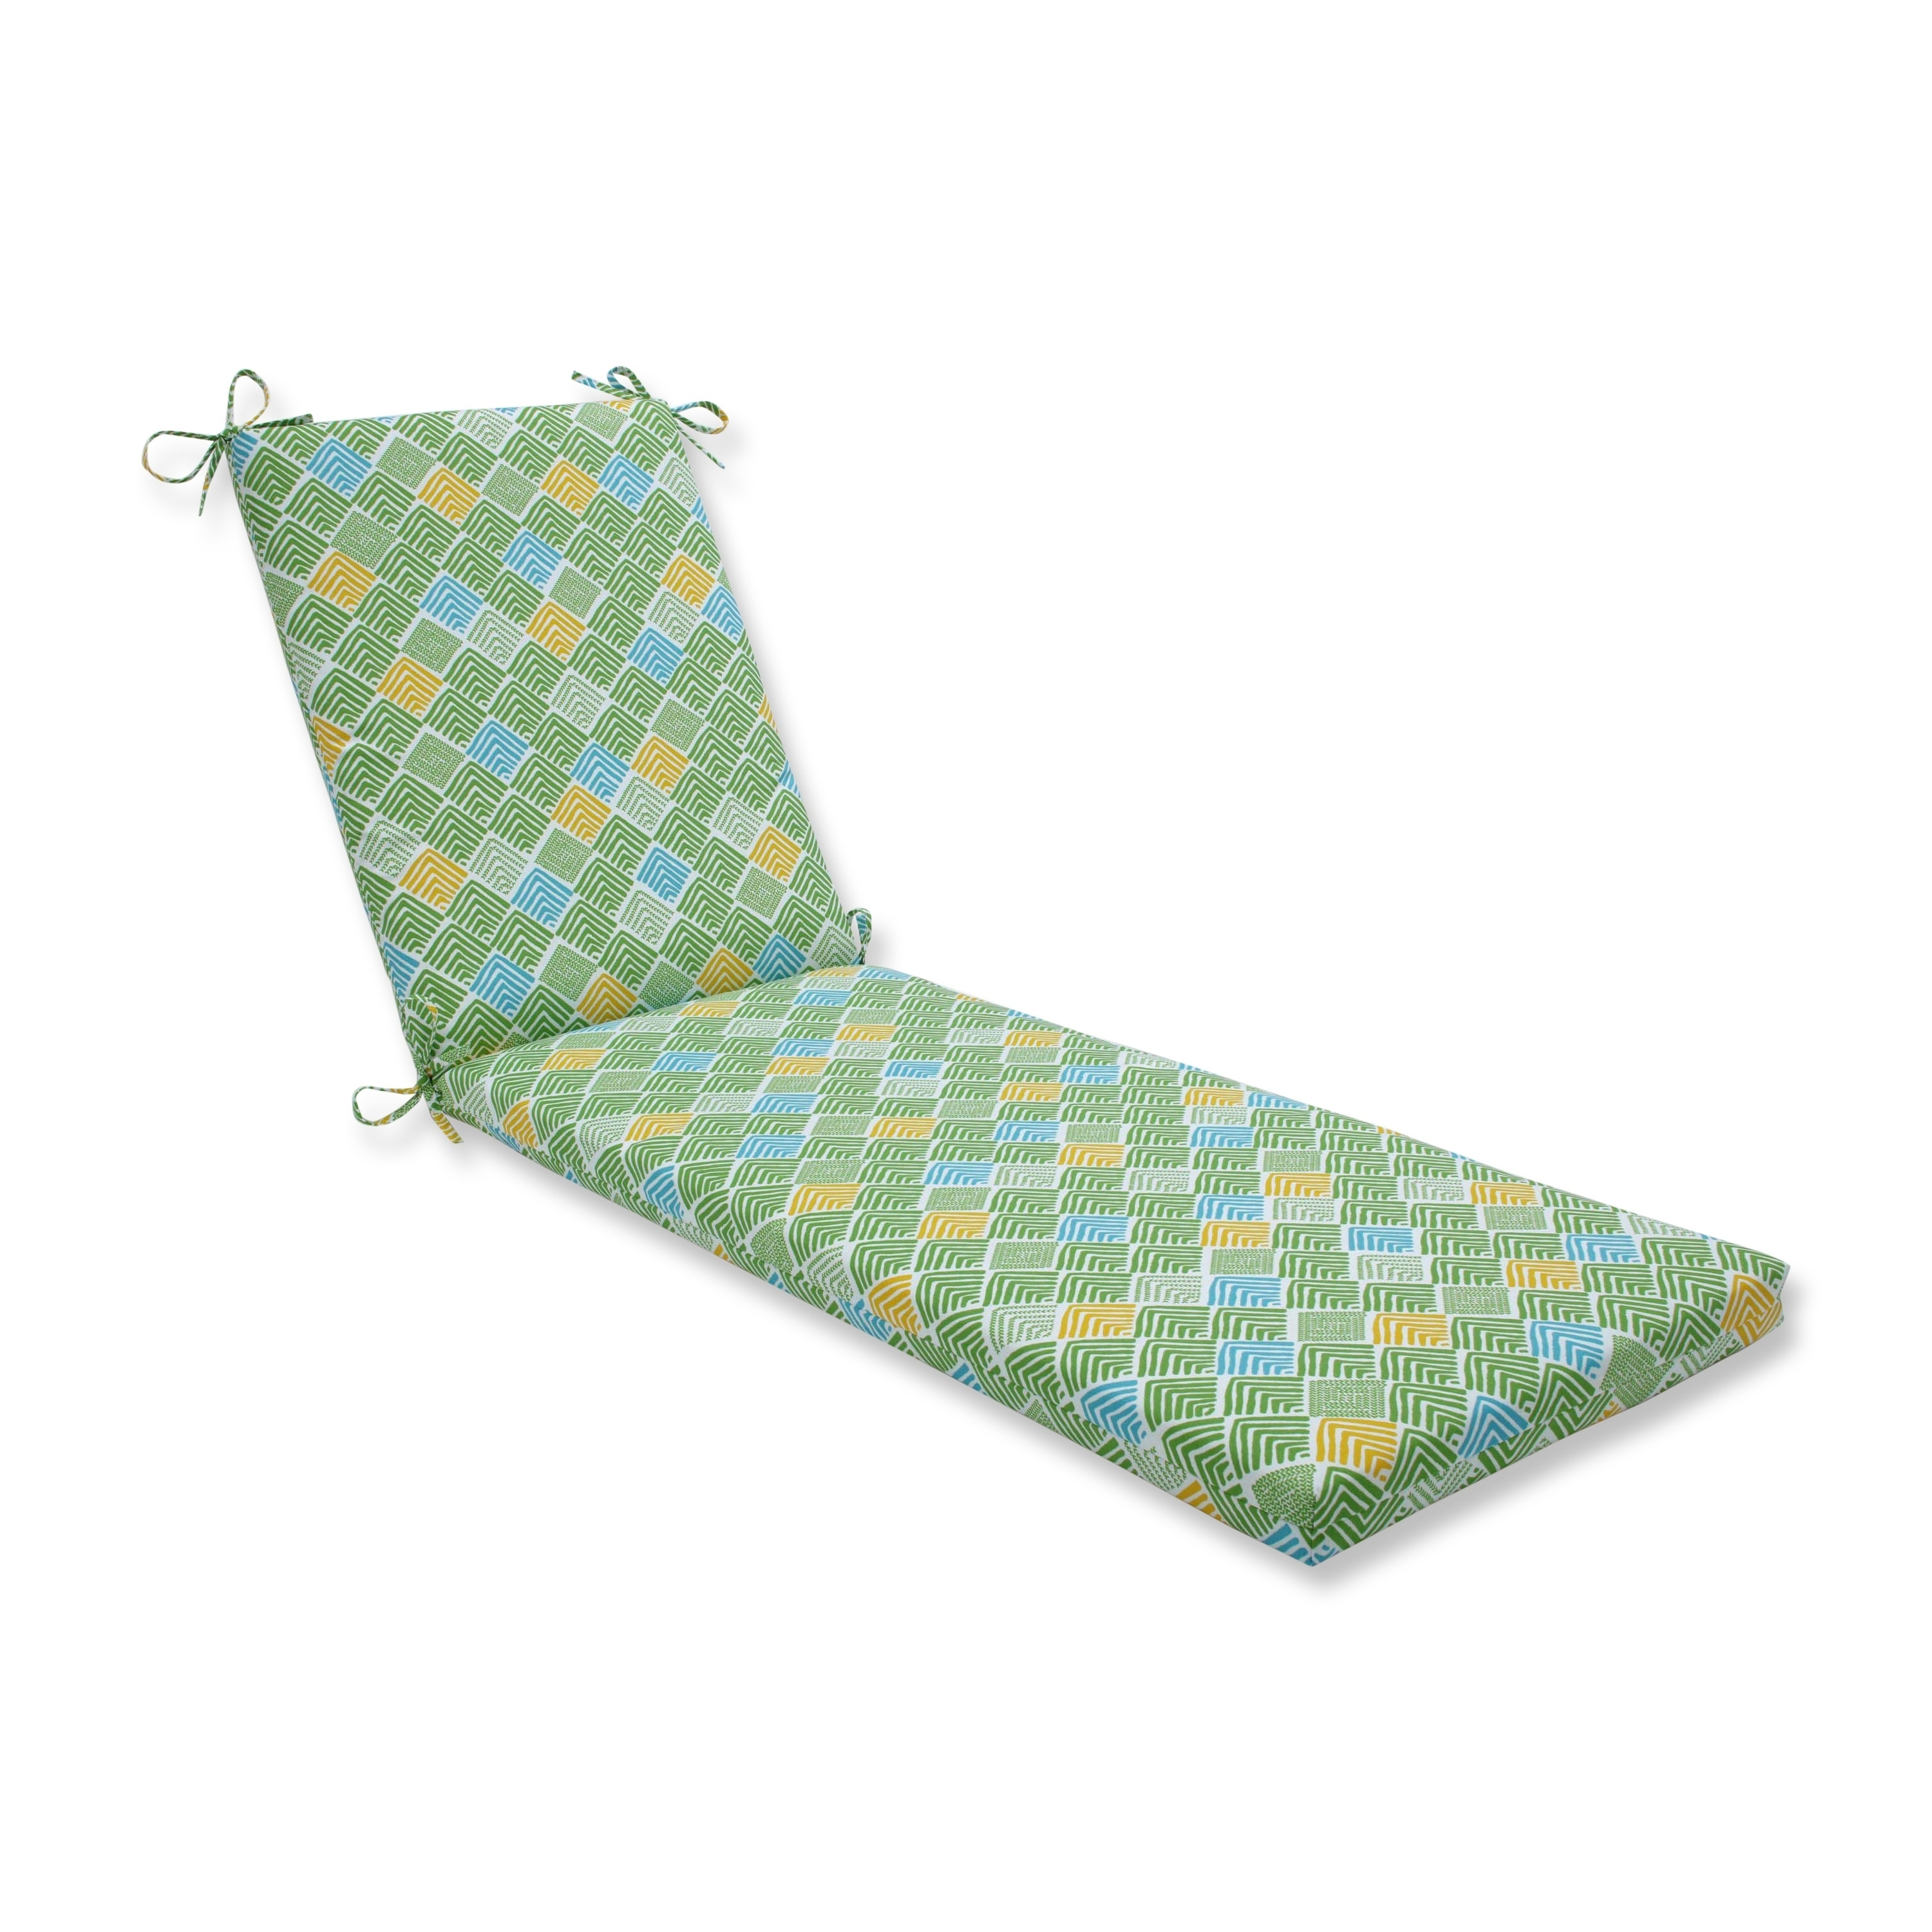 Chaise Design Patchwork Belk Seaglass Chaise Lounge Cushion 80x23x3